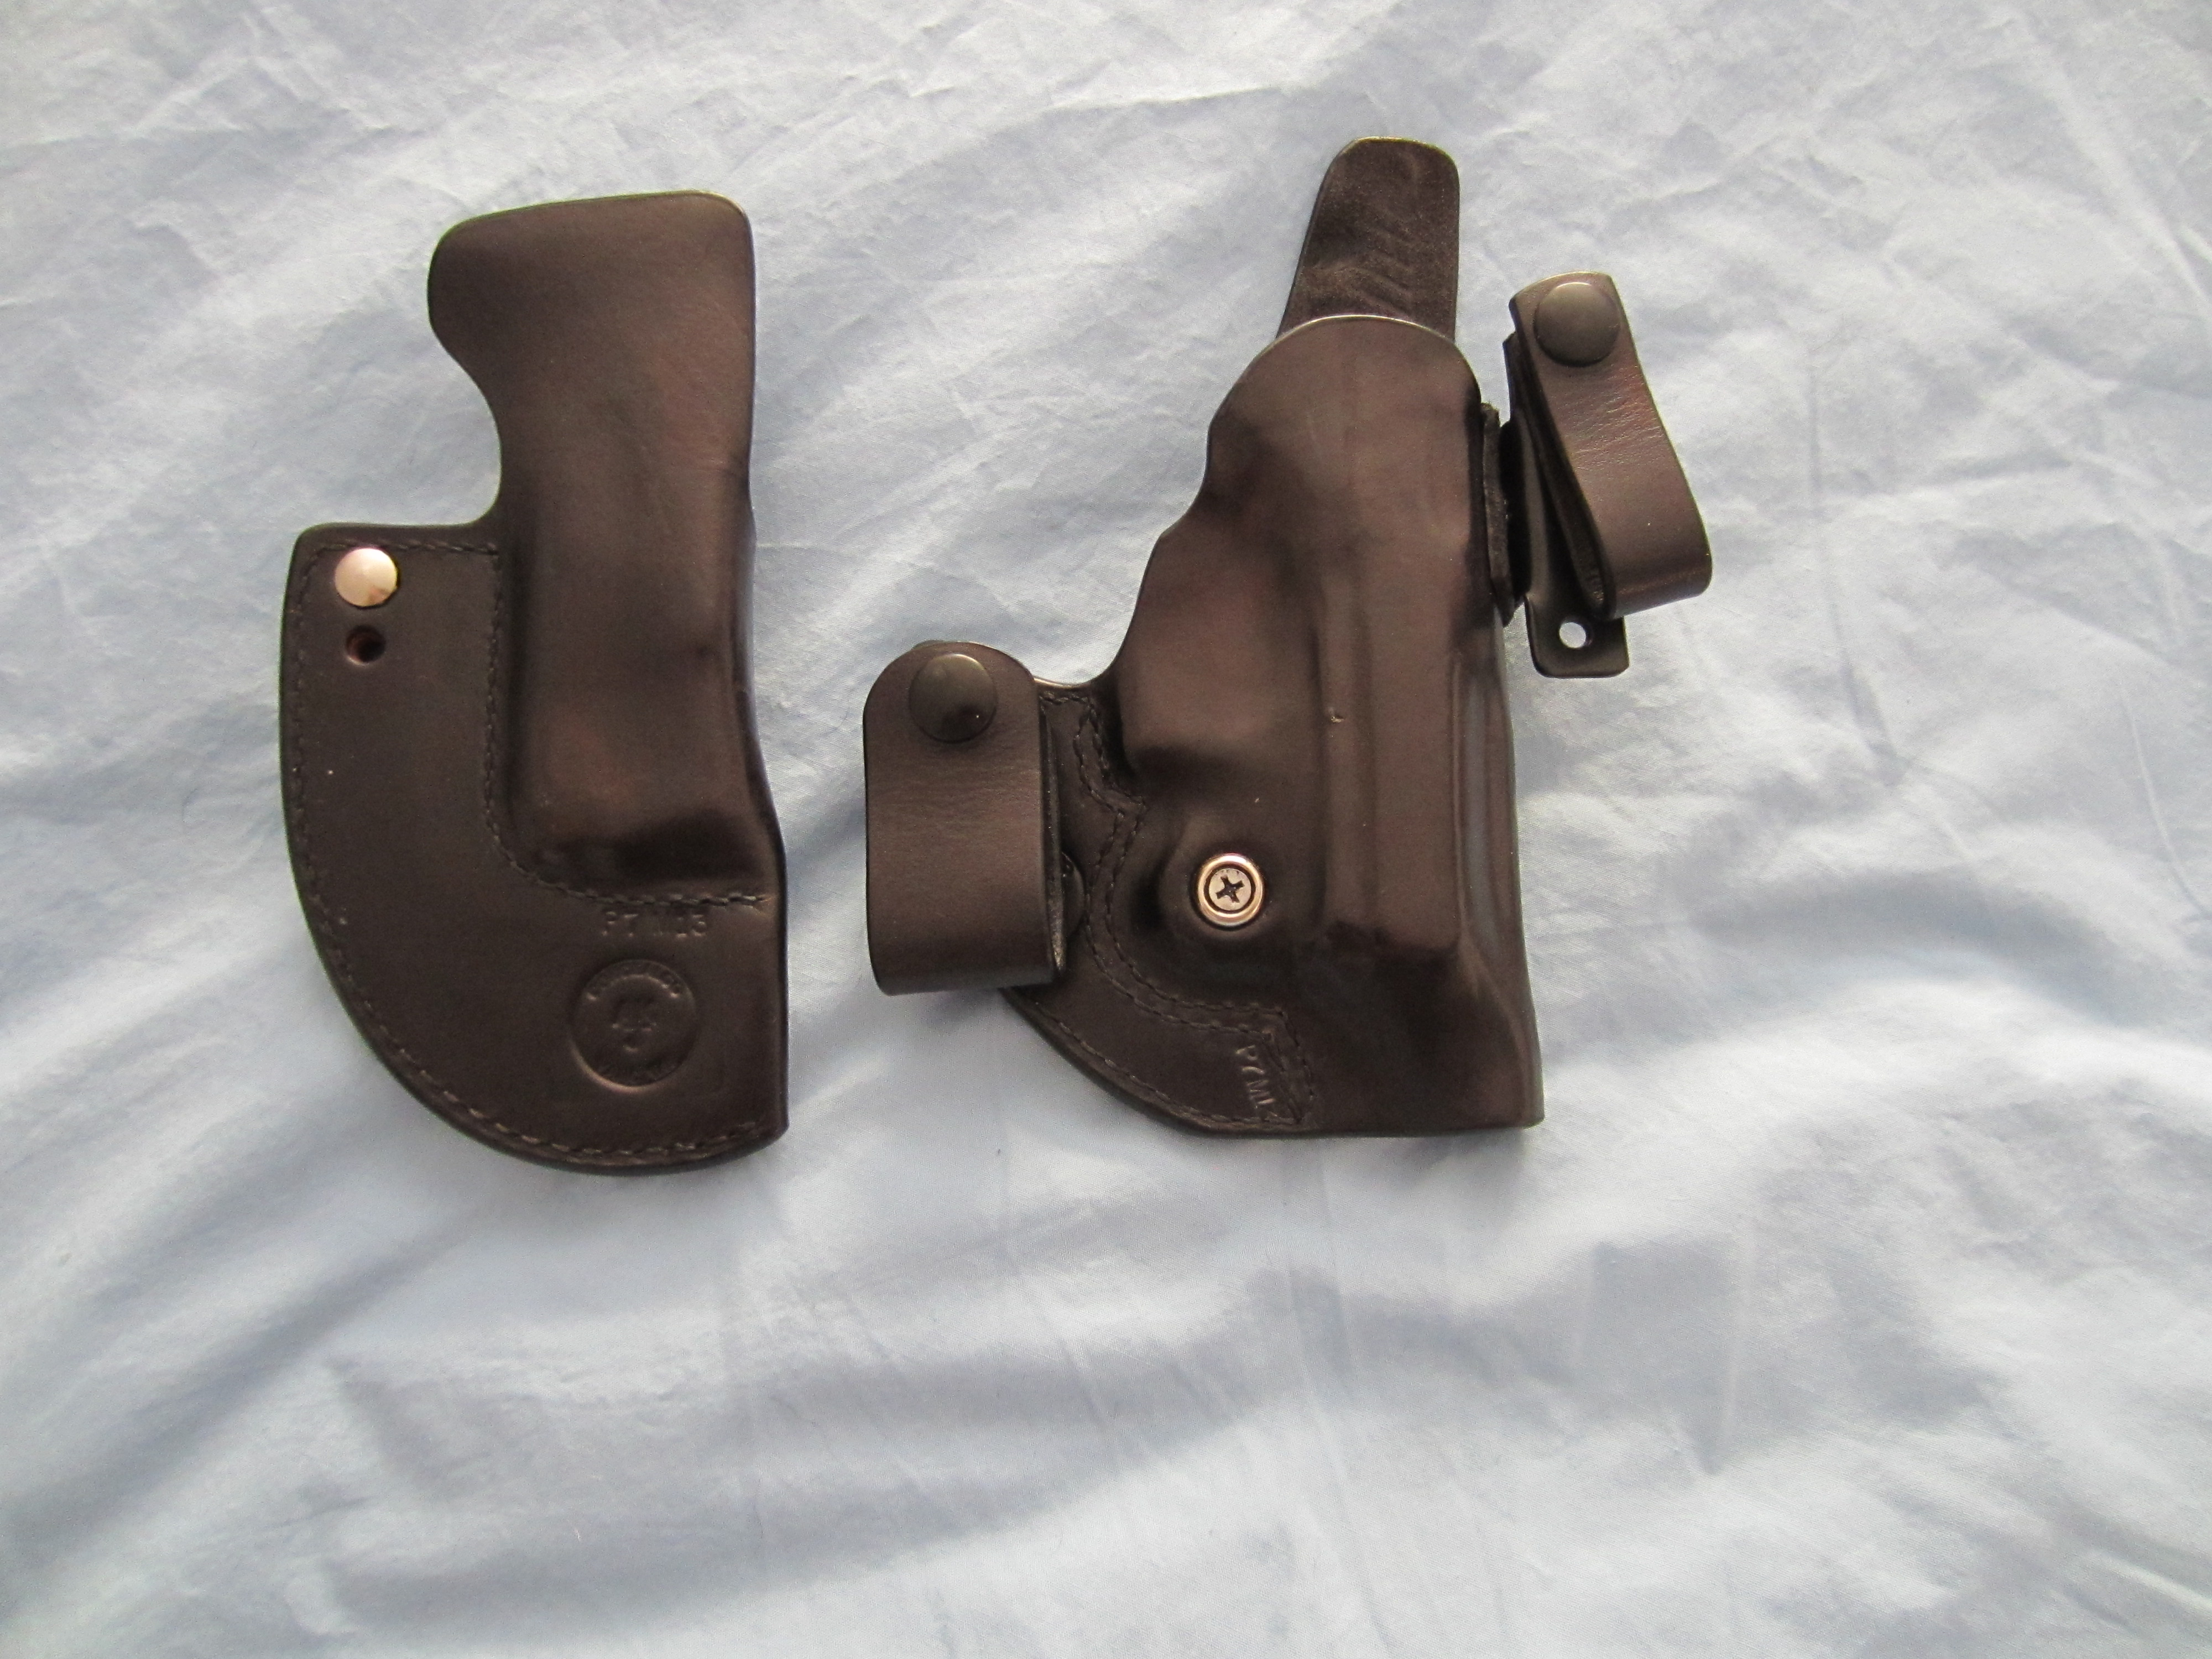 WTS AJK Concealco P7 M13 IWB holster (black leather) and mag